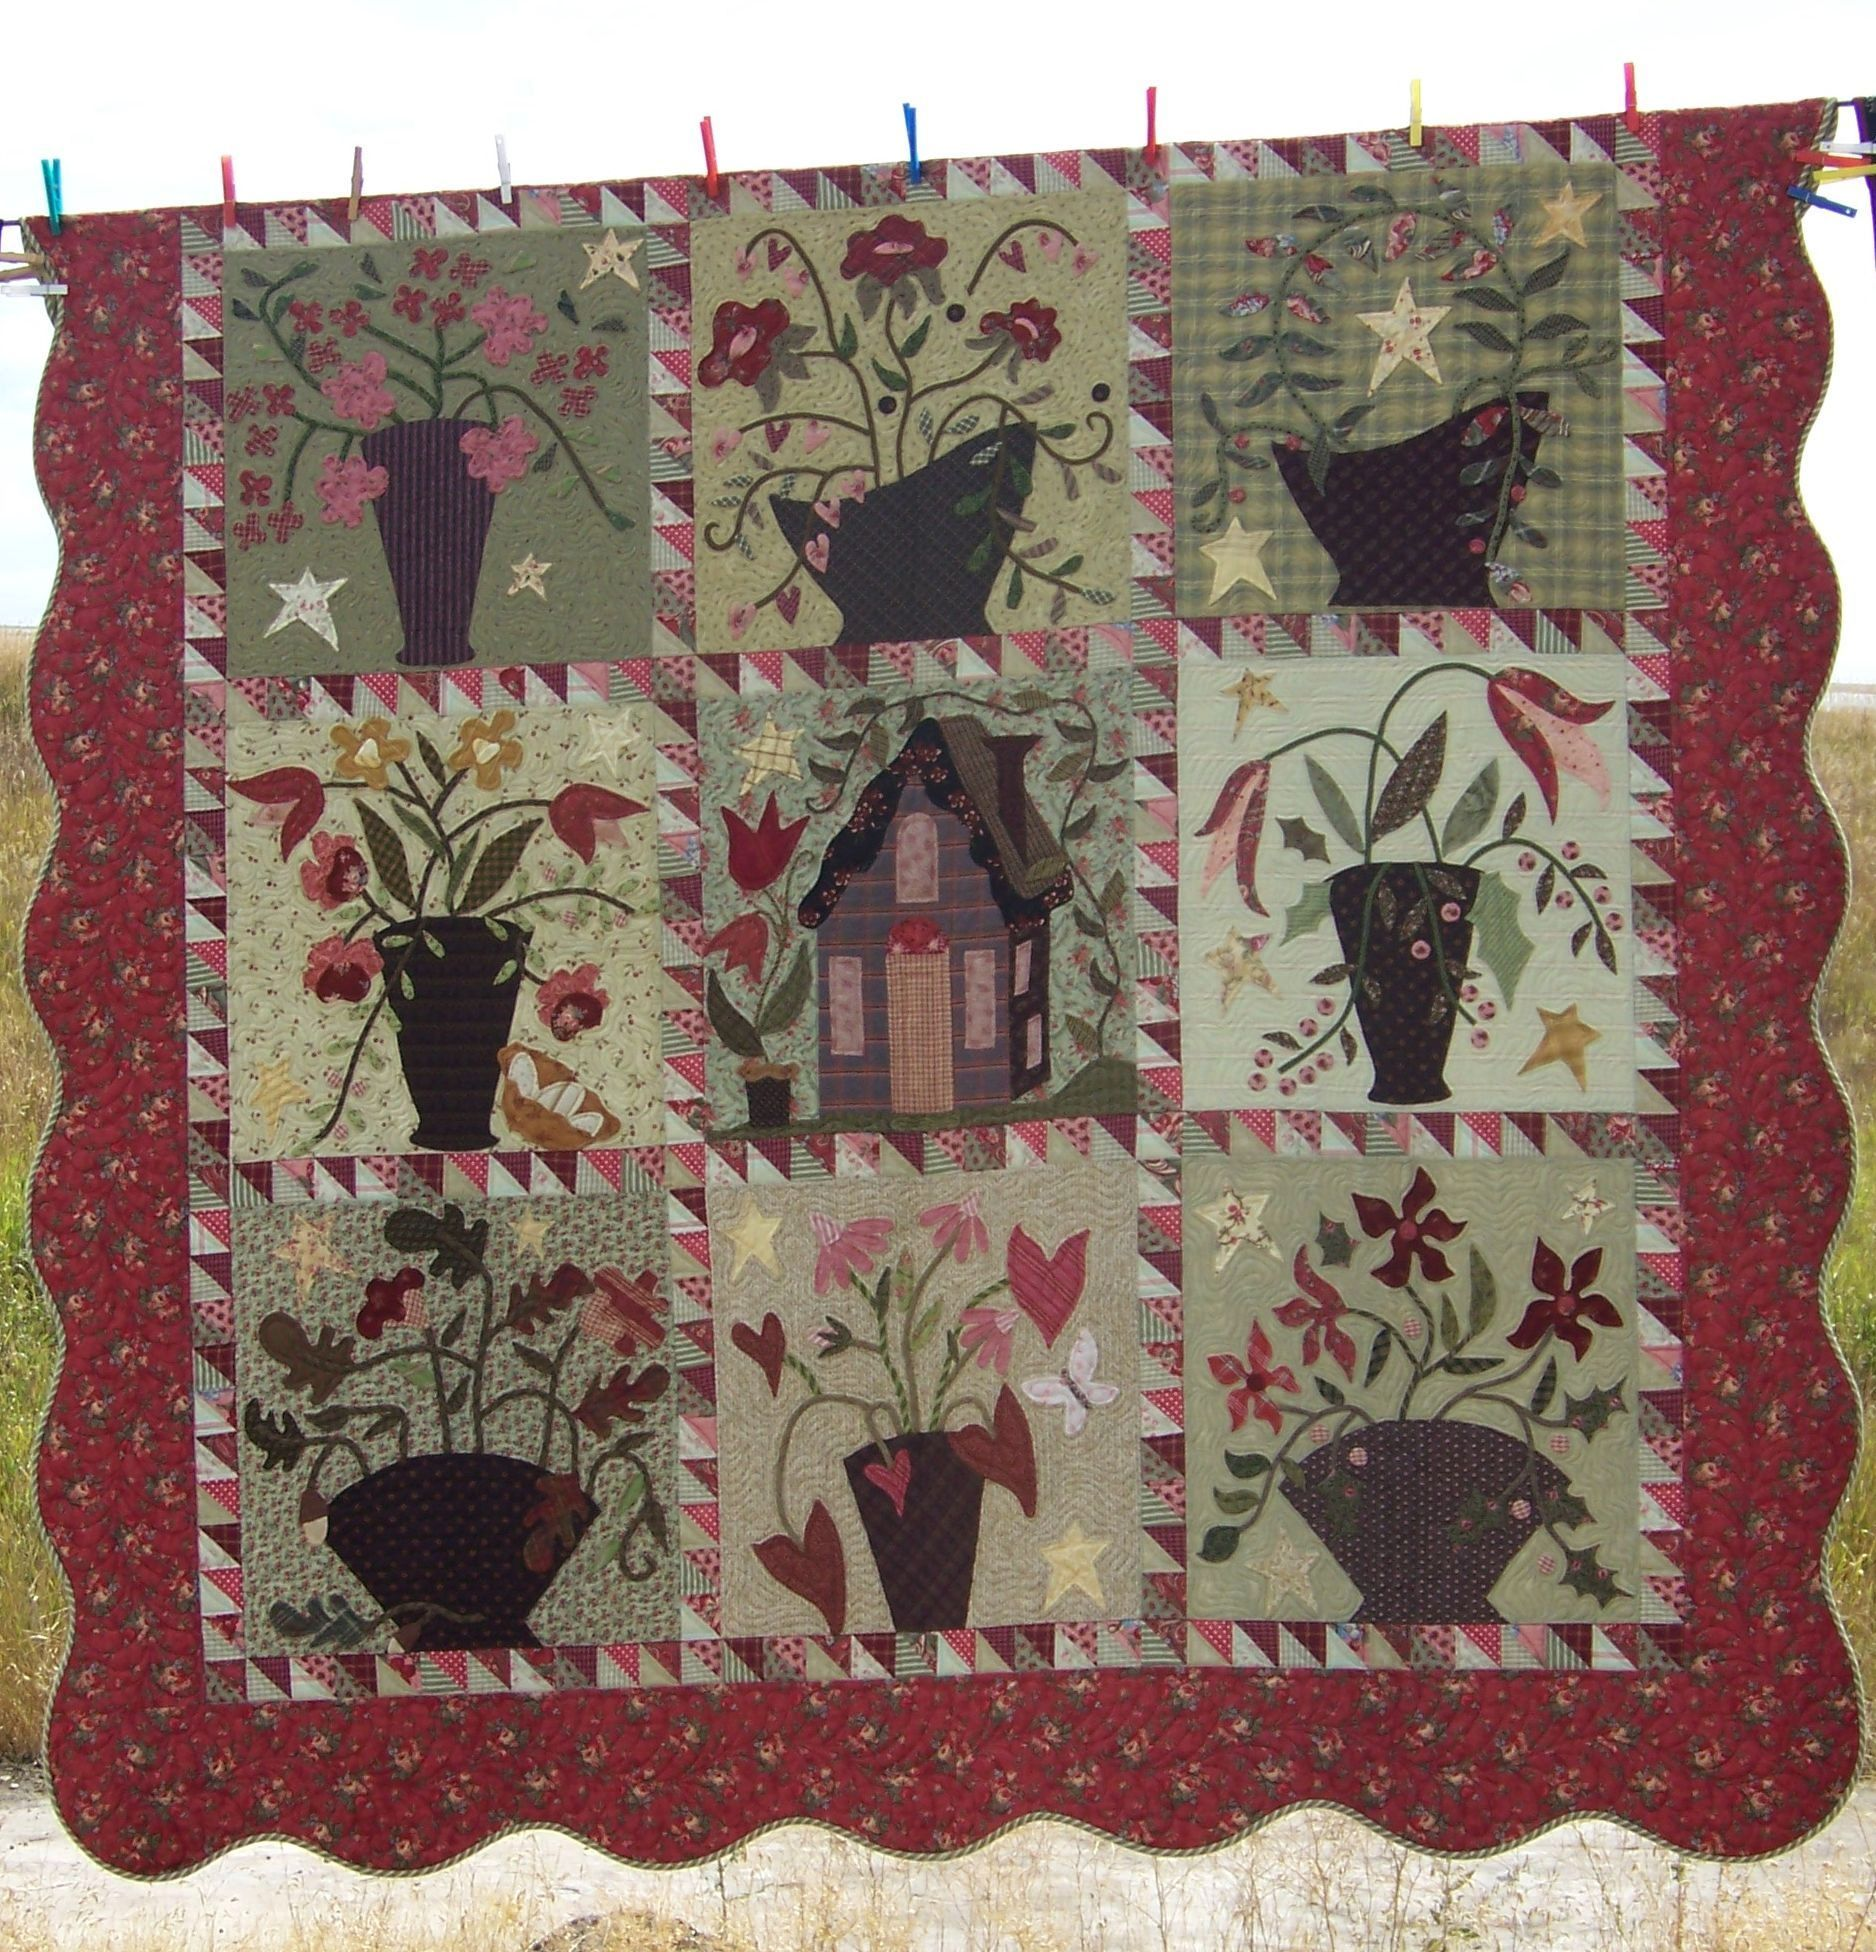 Blackbird Designs applique displayed at the Buggy Barn annual ... : buggy barn quilt show - Adamdwight.com